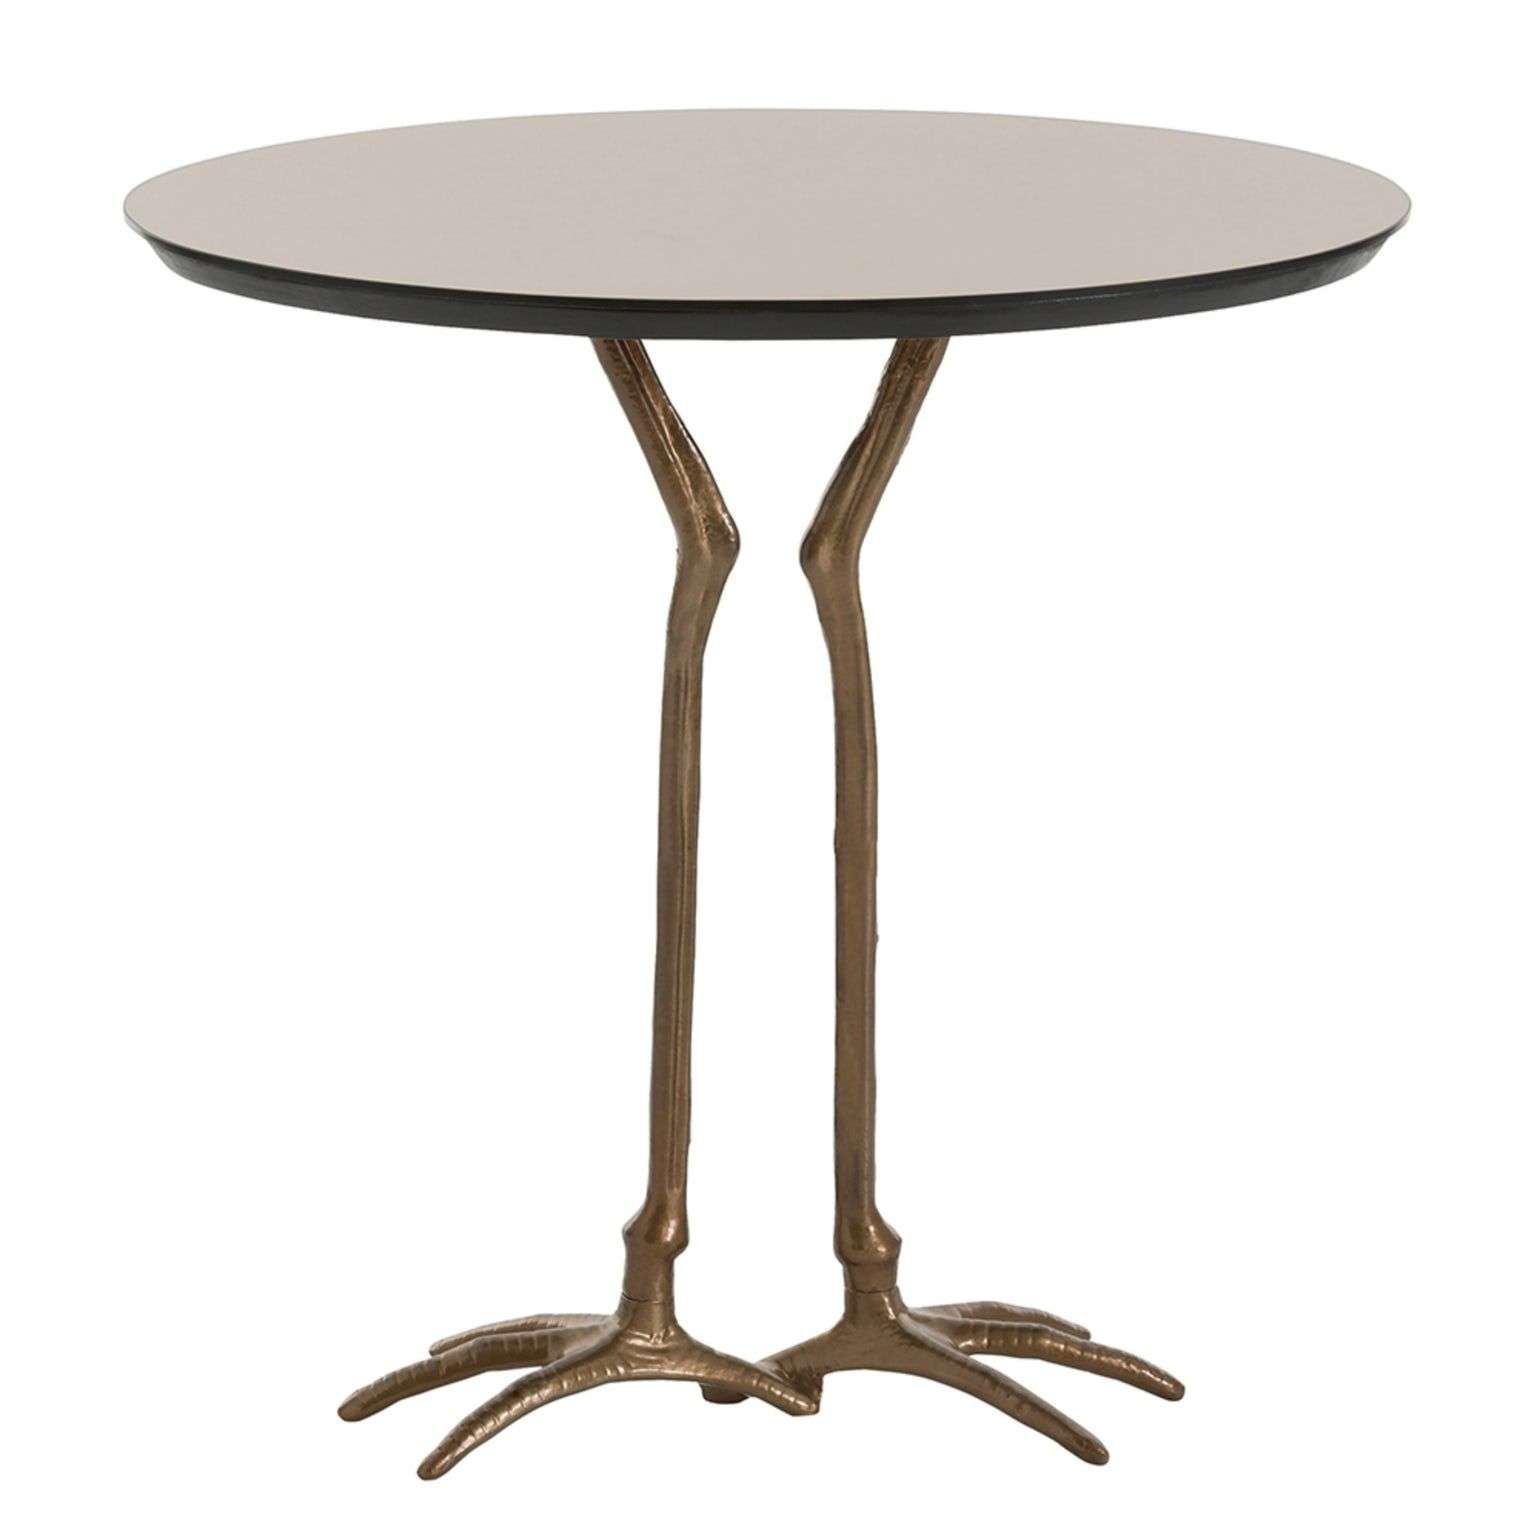 emilio accent table metal mirror industrial and traditional tables with matching mirrors round glass end oak wood dining room furniture nautical track lighting coastal console